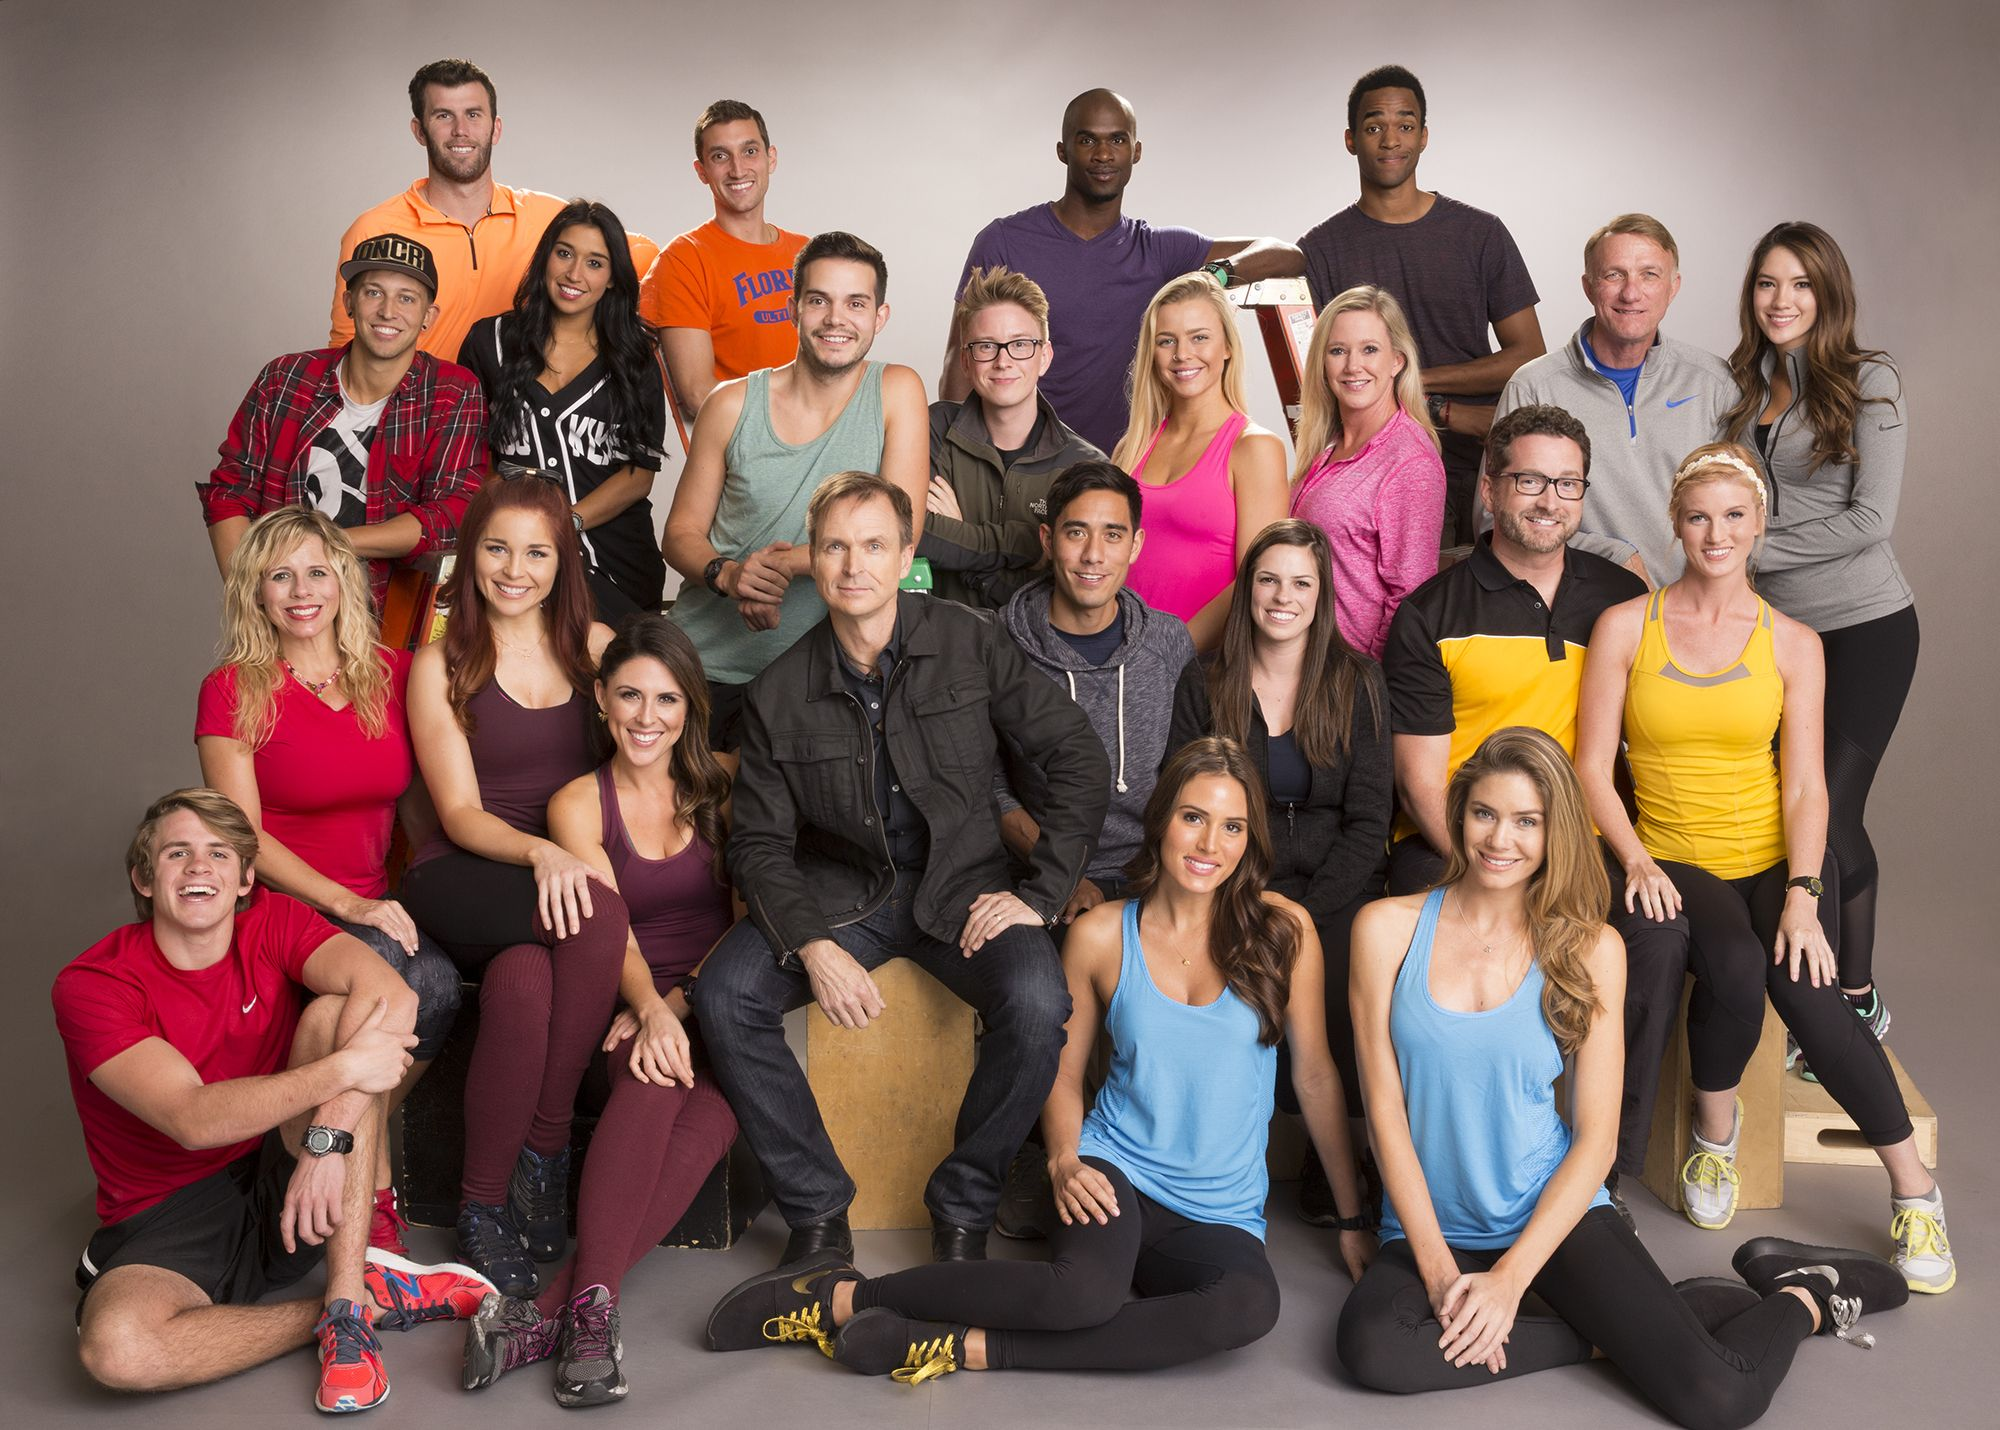 Here's What You Need To Do To Get Cast on The Amazing Race